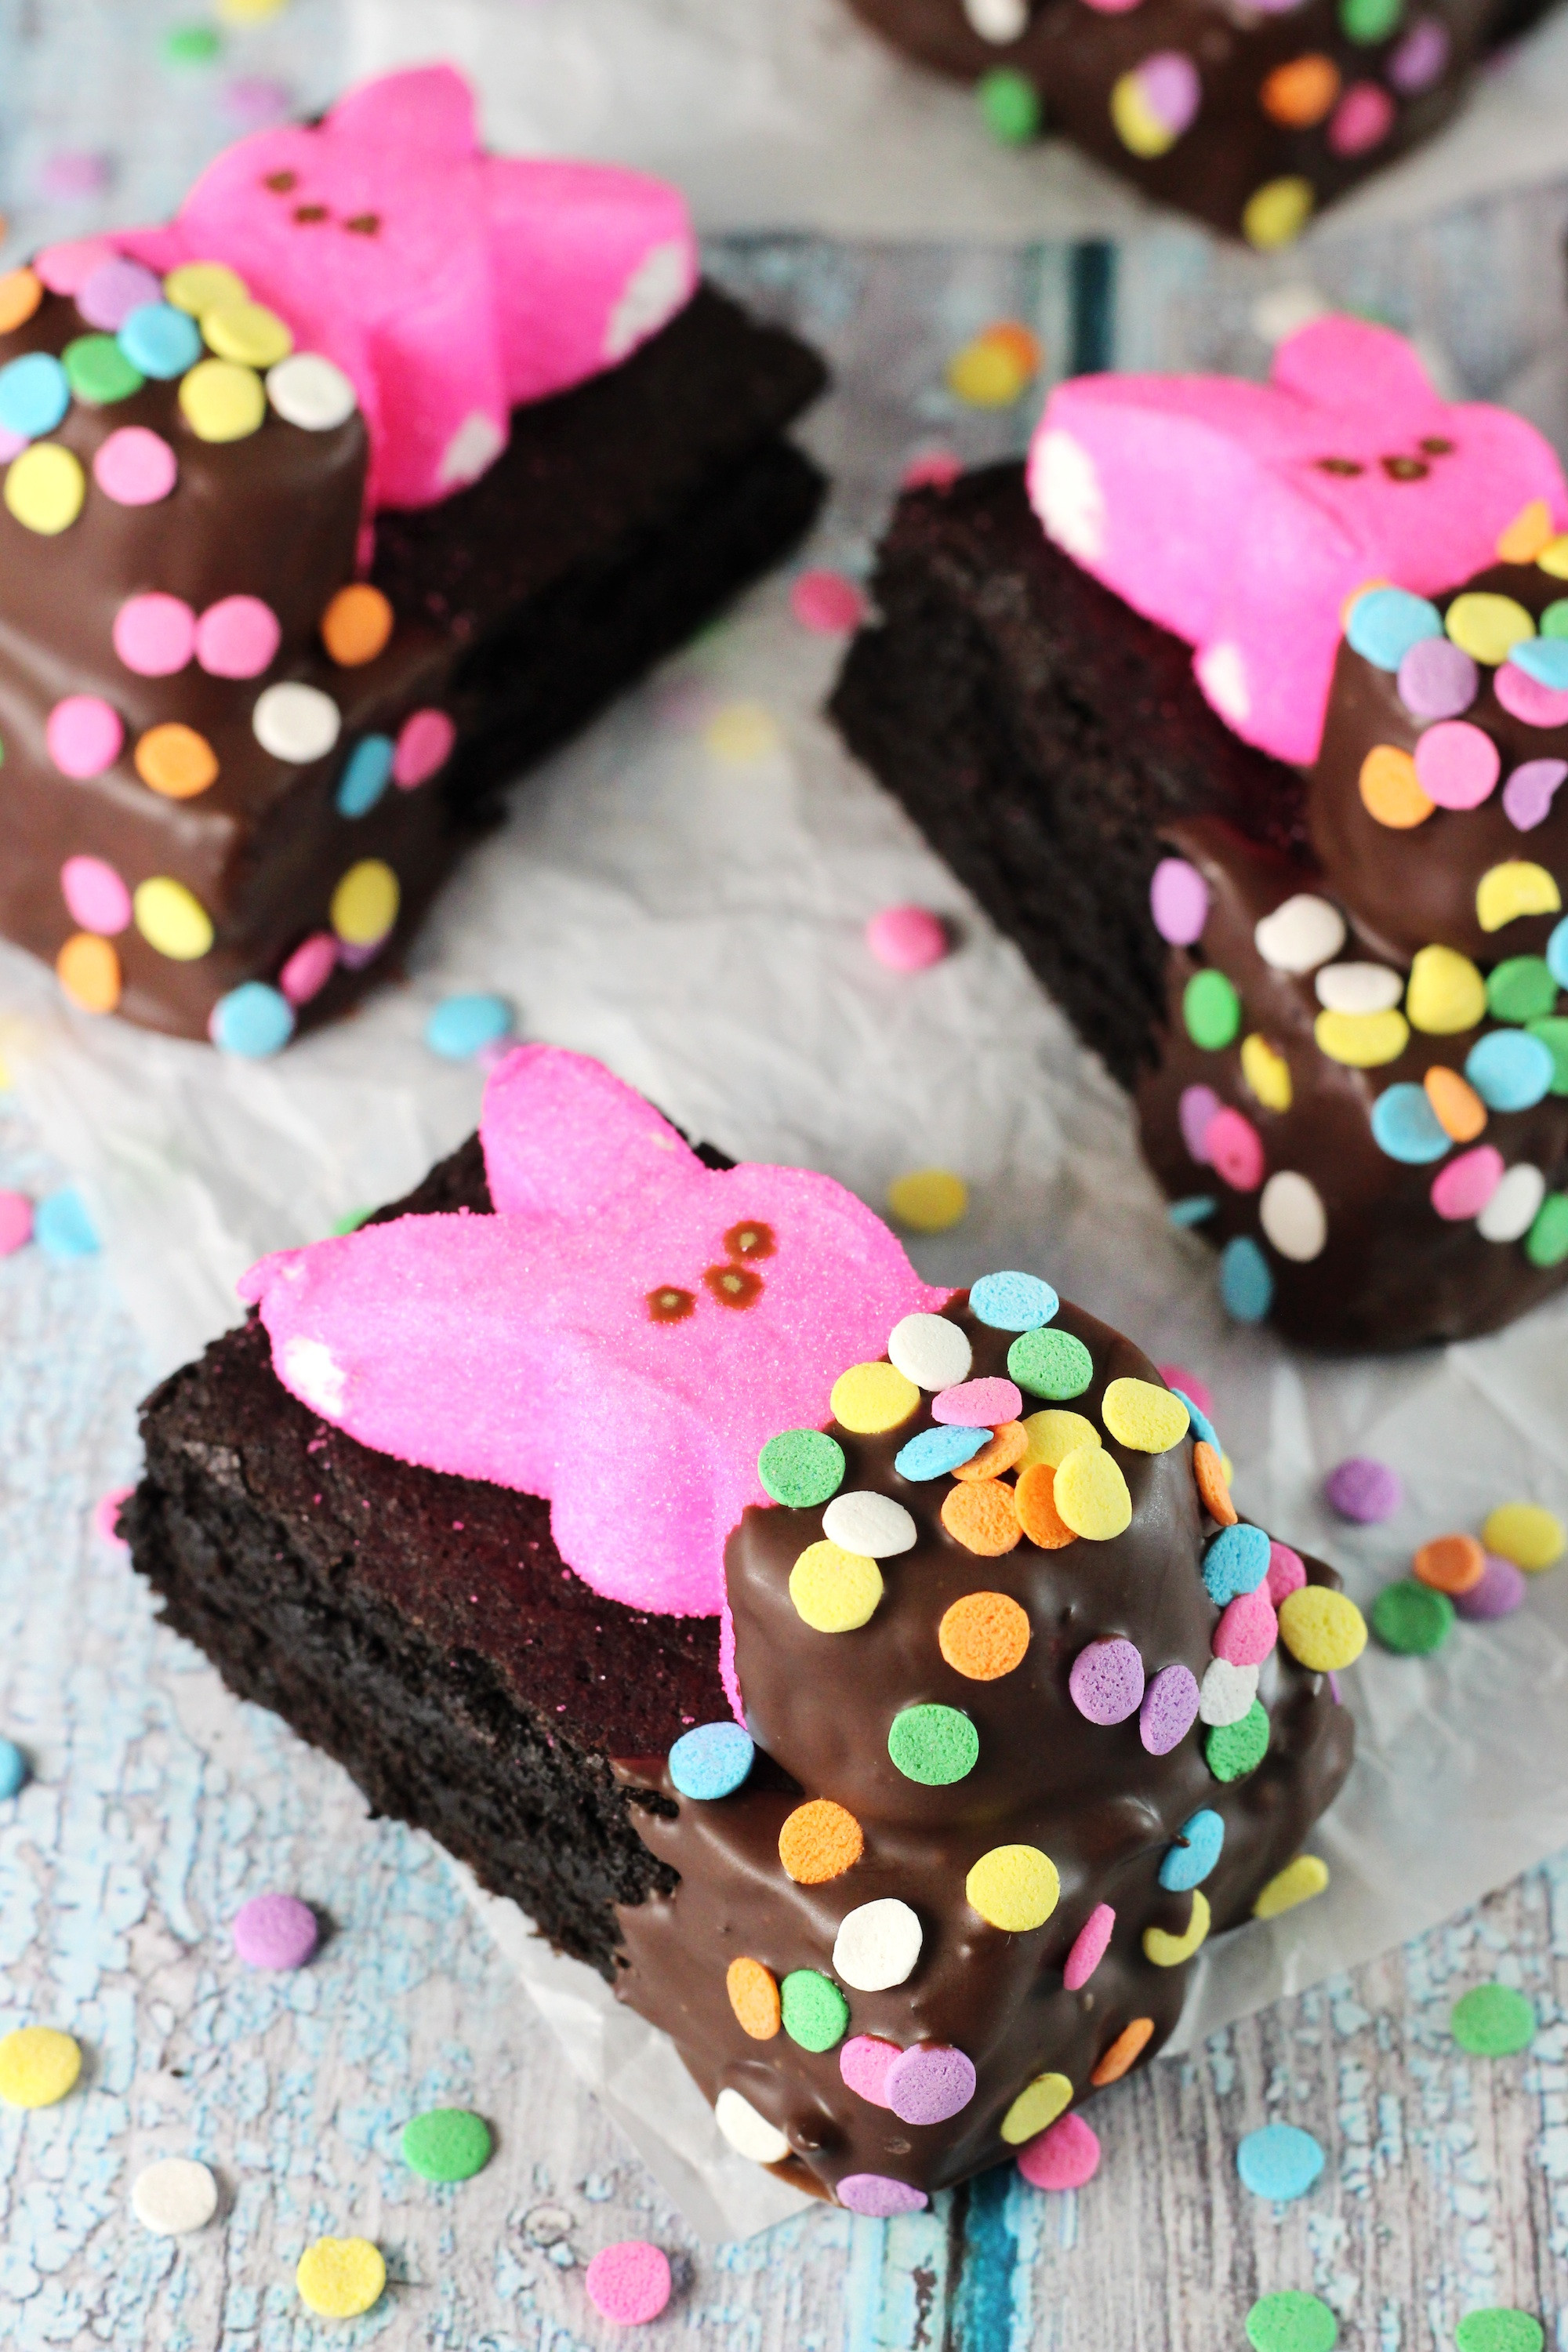 Easter Desserts Recipes  11 Easy Easter Desserts That Are Almost Too Adorable To